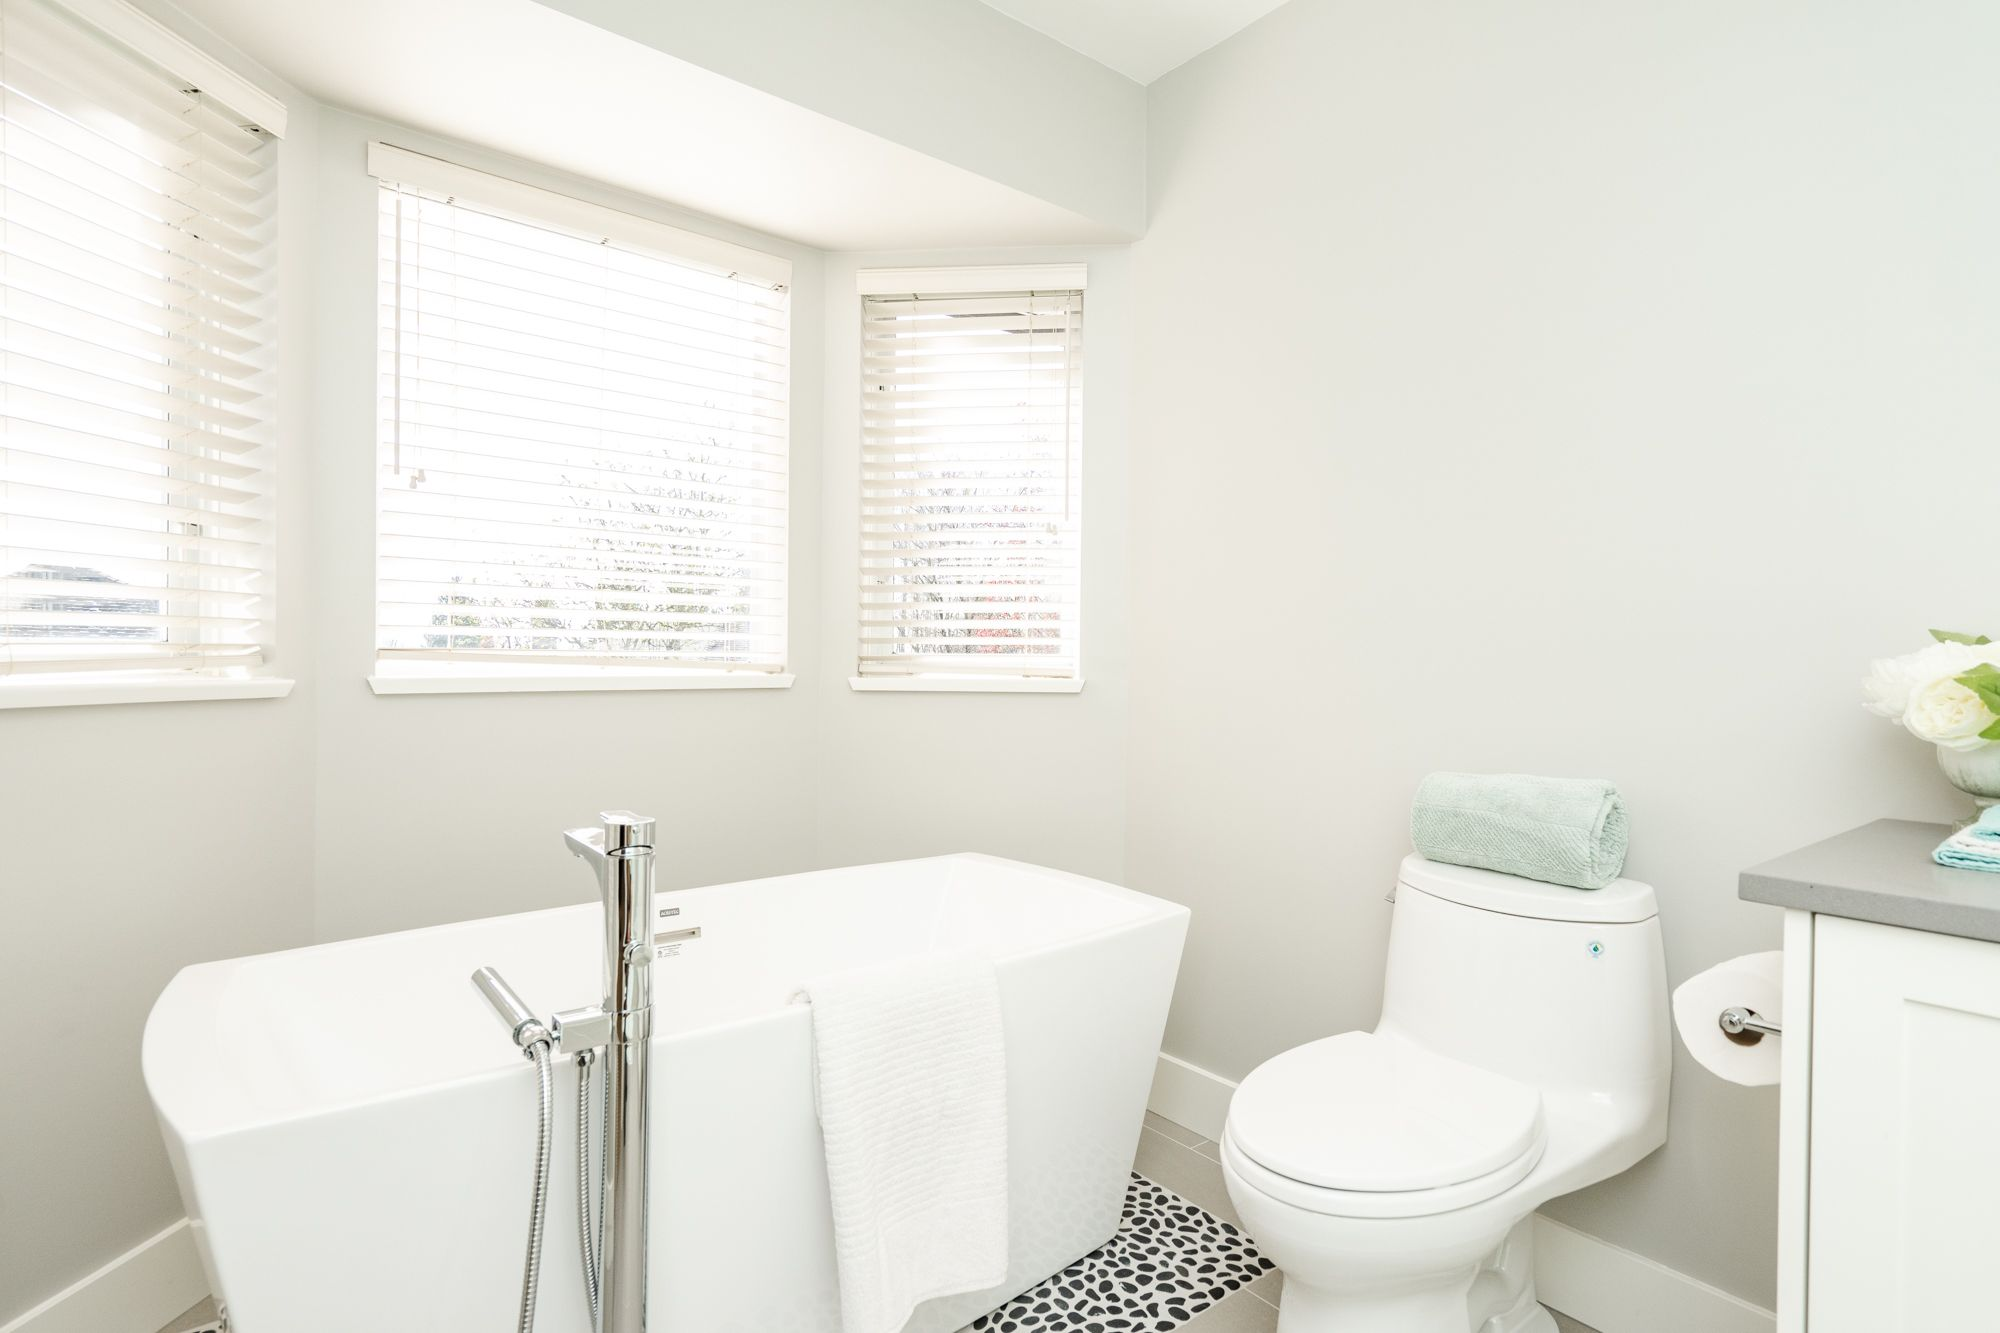 """Photo 21: Photos: 8448 213 Street in Langley: Walnut Grove House for sale in """"Forest Hills"""" : MLS®# R2259409"""